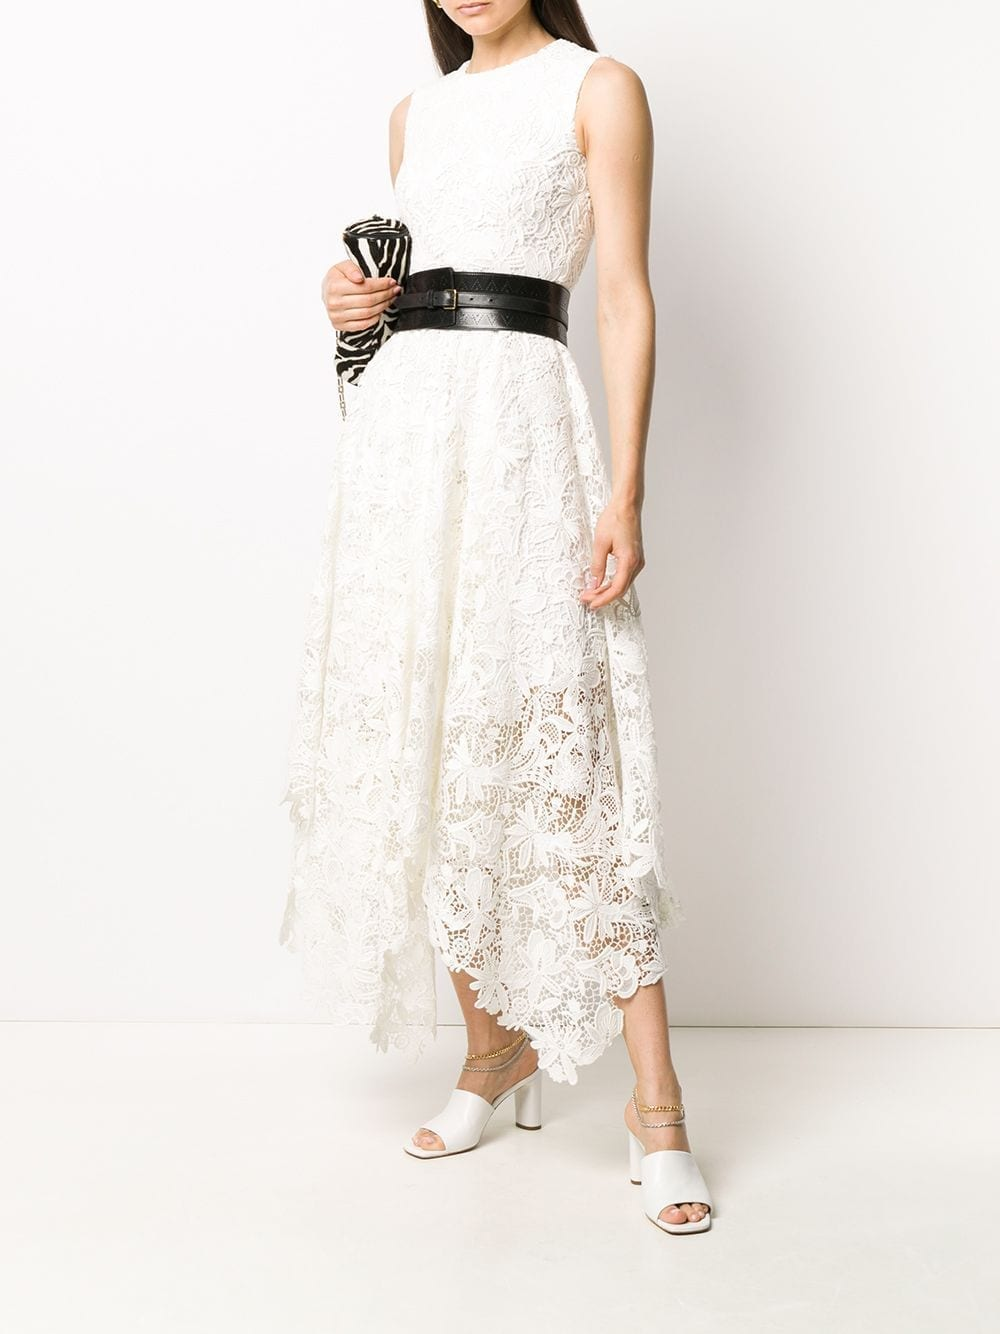 ALEXANDER MCQUEEN Floral Lace Asymmetric Dress